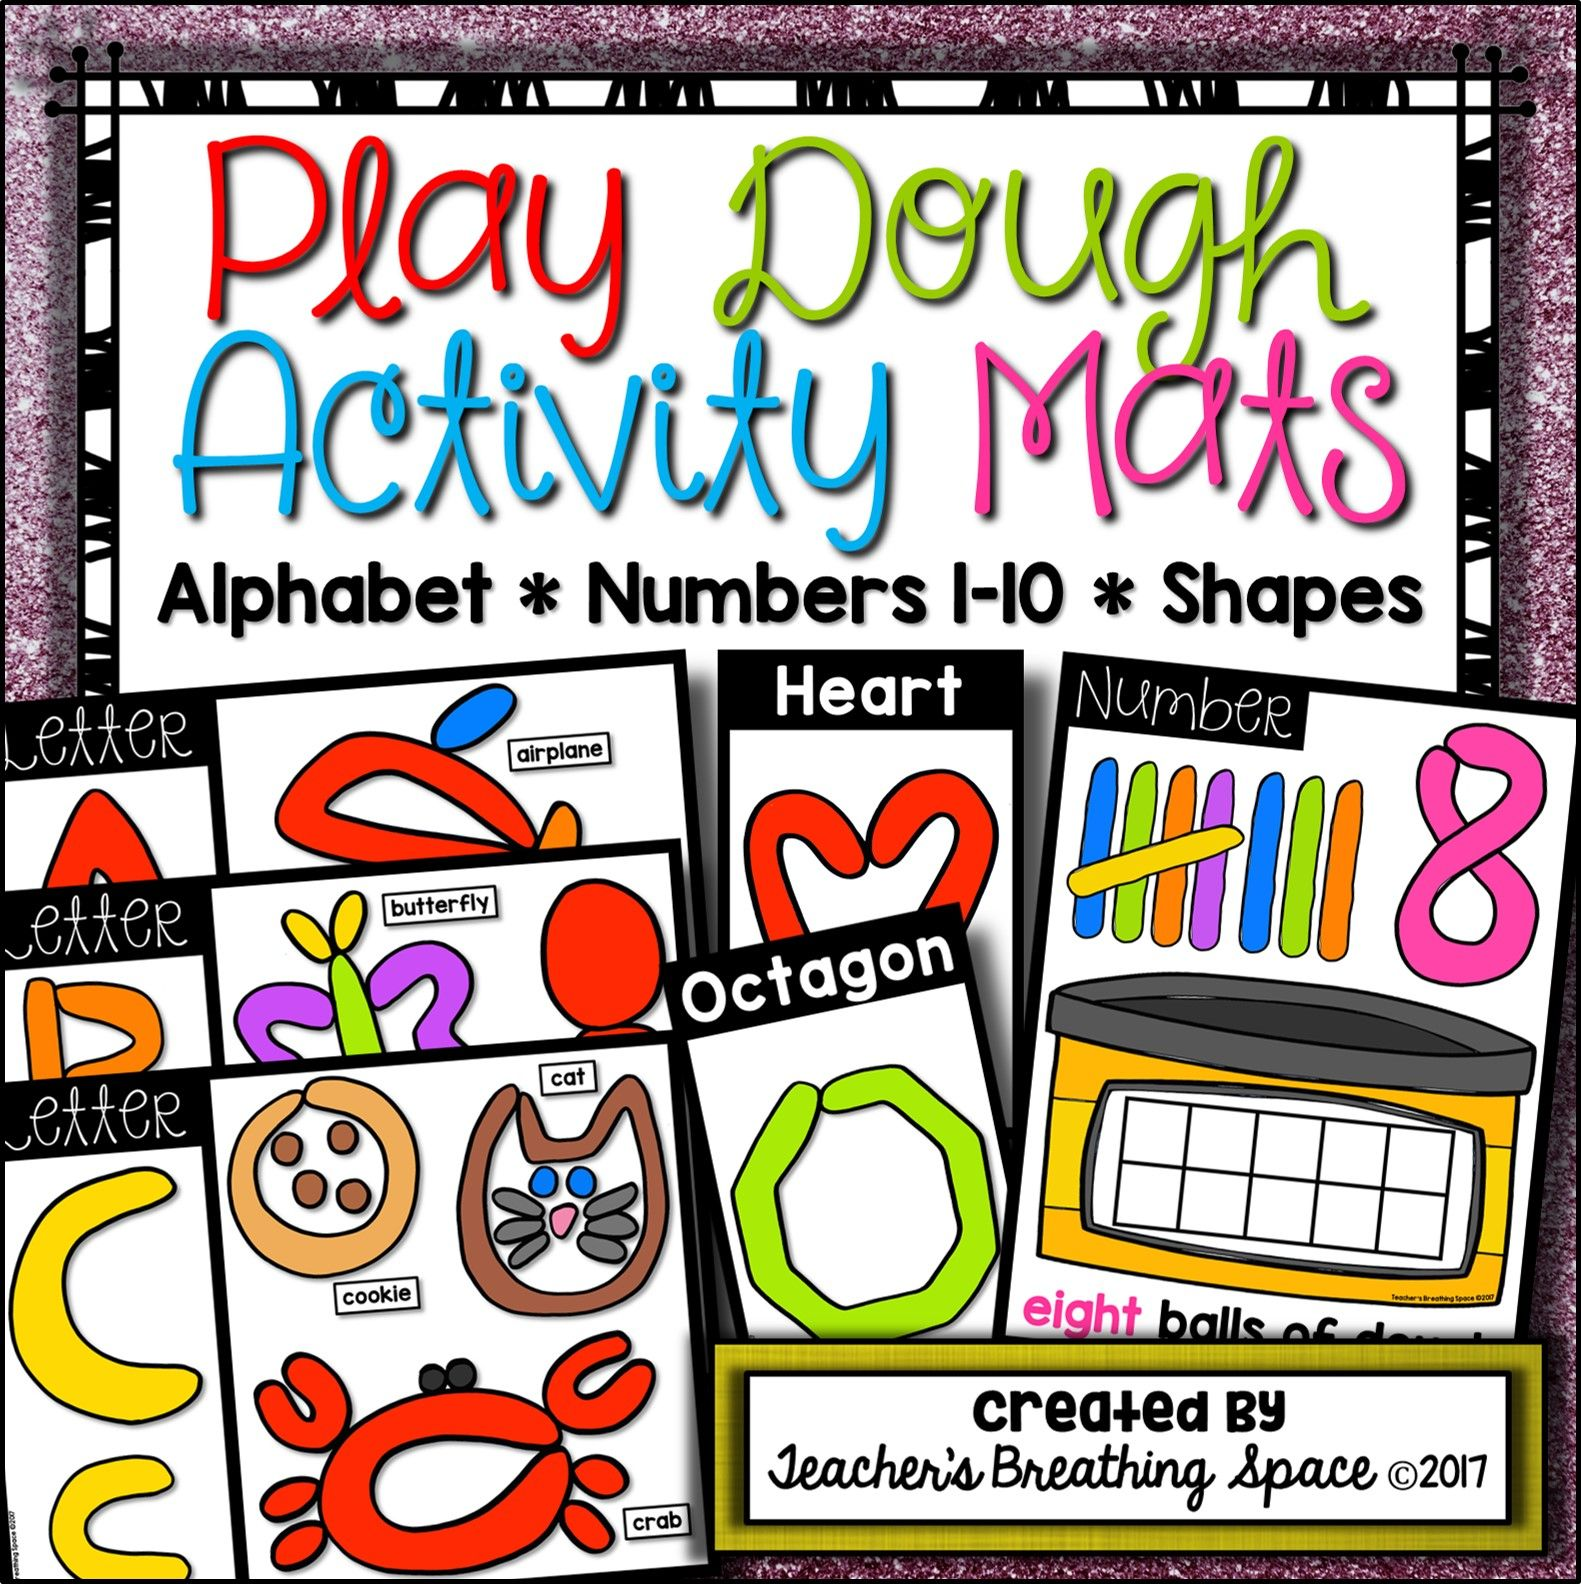 Play dough mats letters beginning sounds numbers and